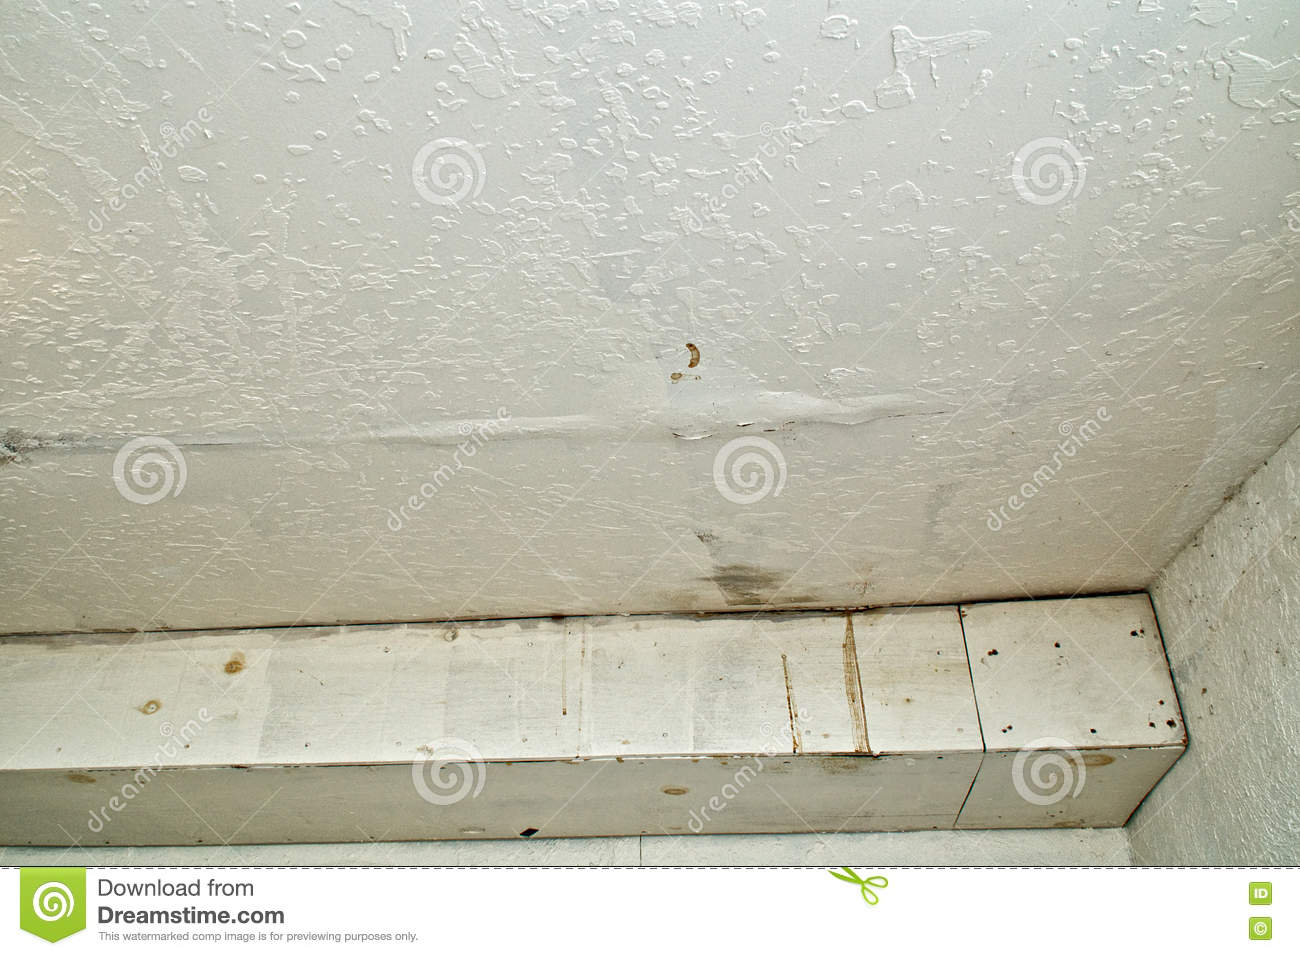 Leak in ceiling when it rains Leak in ceiling when it rains